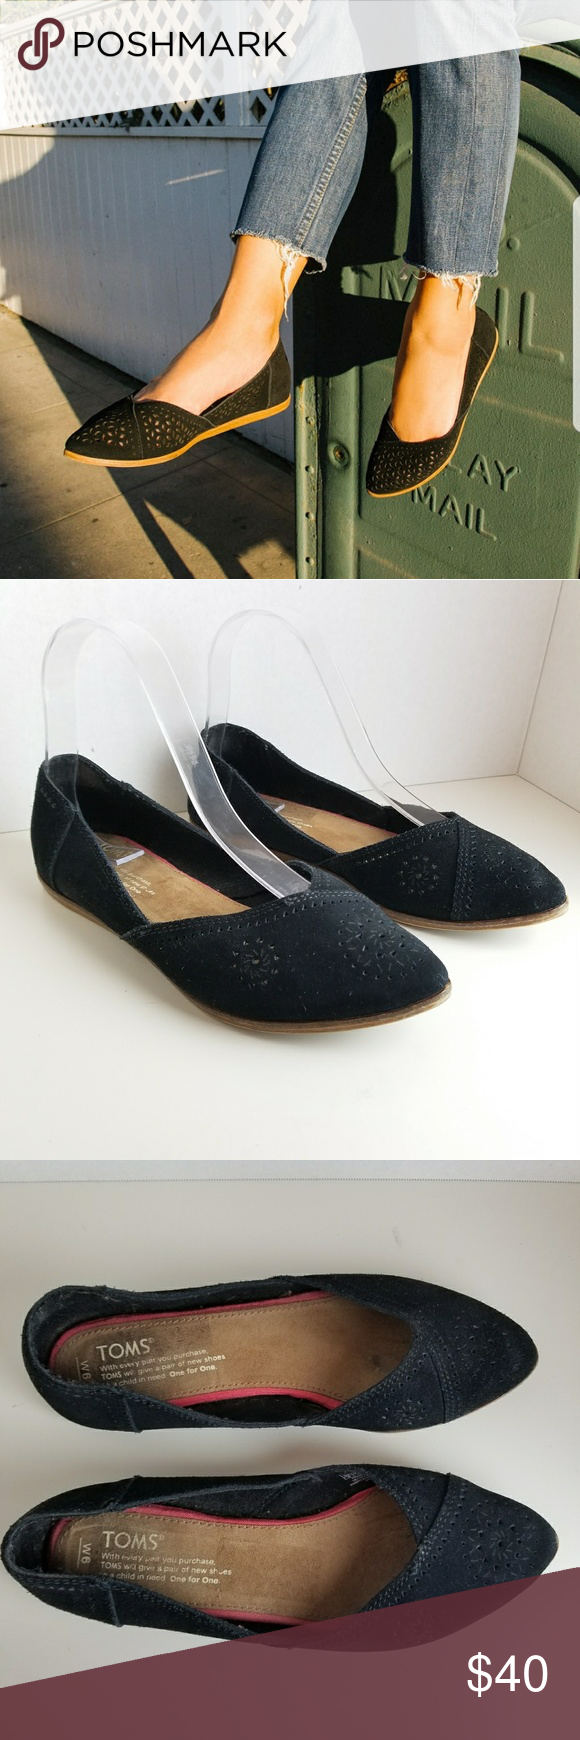 da7bc48fd5e Toms Black Perforated Suede Jutti Flats 6 Toms Black Perforated Suede Jutti  Ponted Toe Flats Size 6 Great preowned condition SB2 Toms Shoes Flats    Loafers